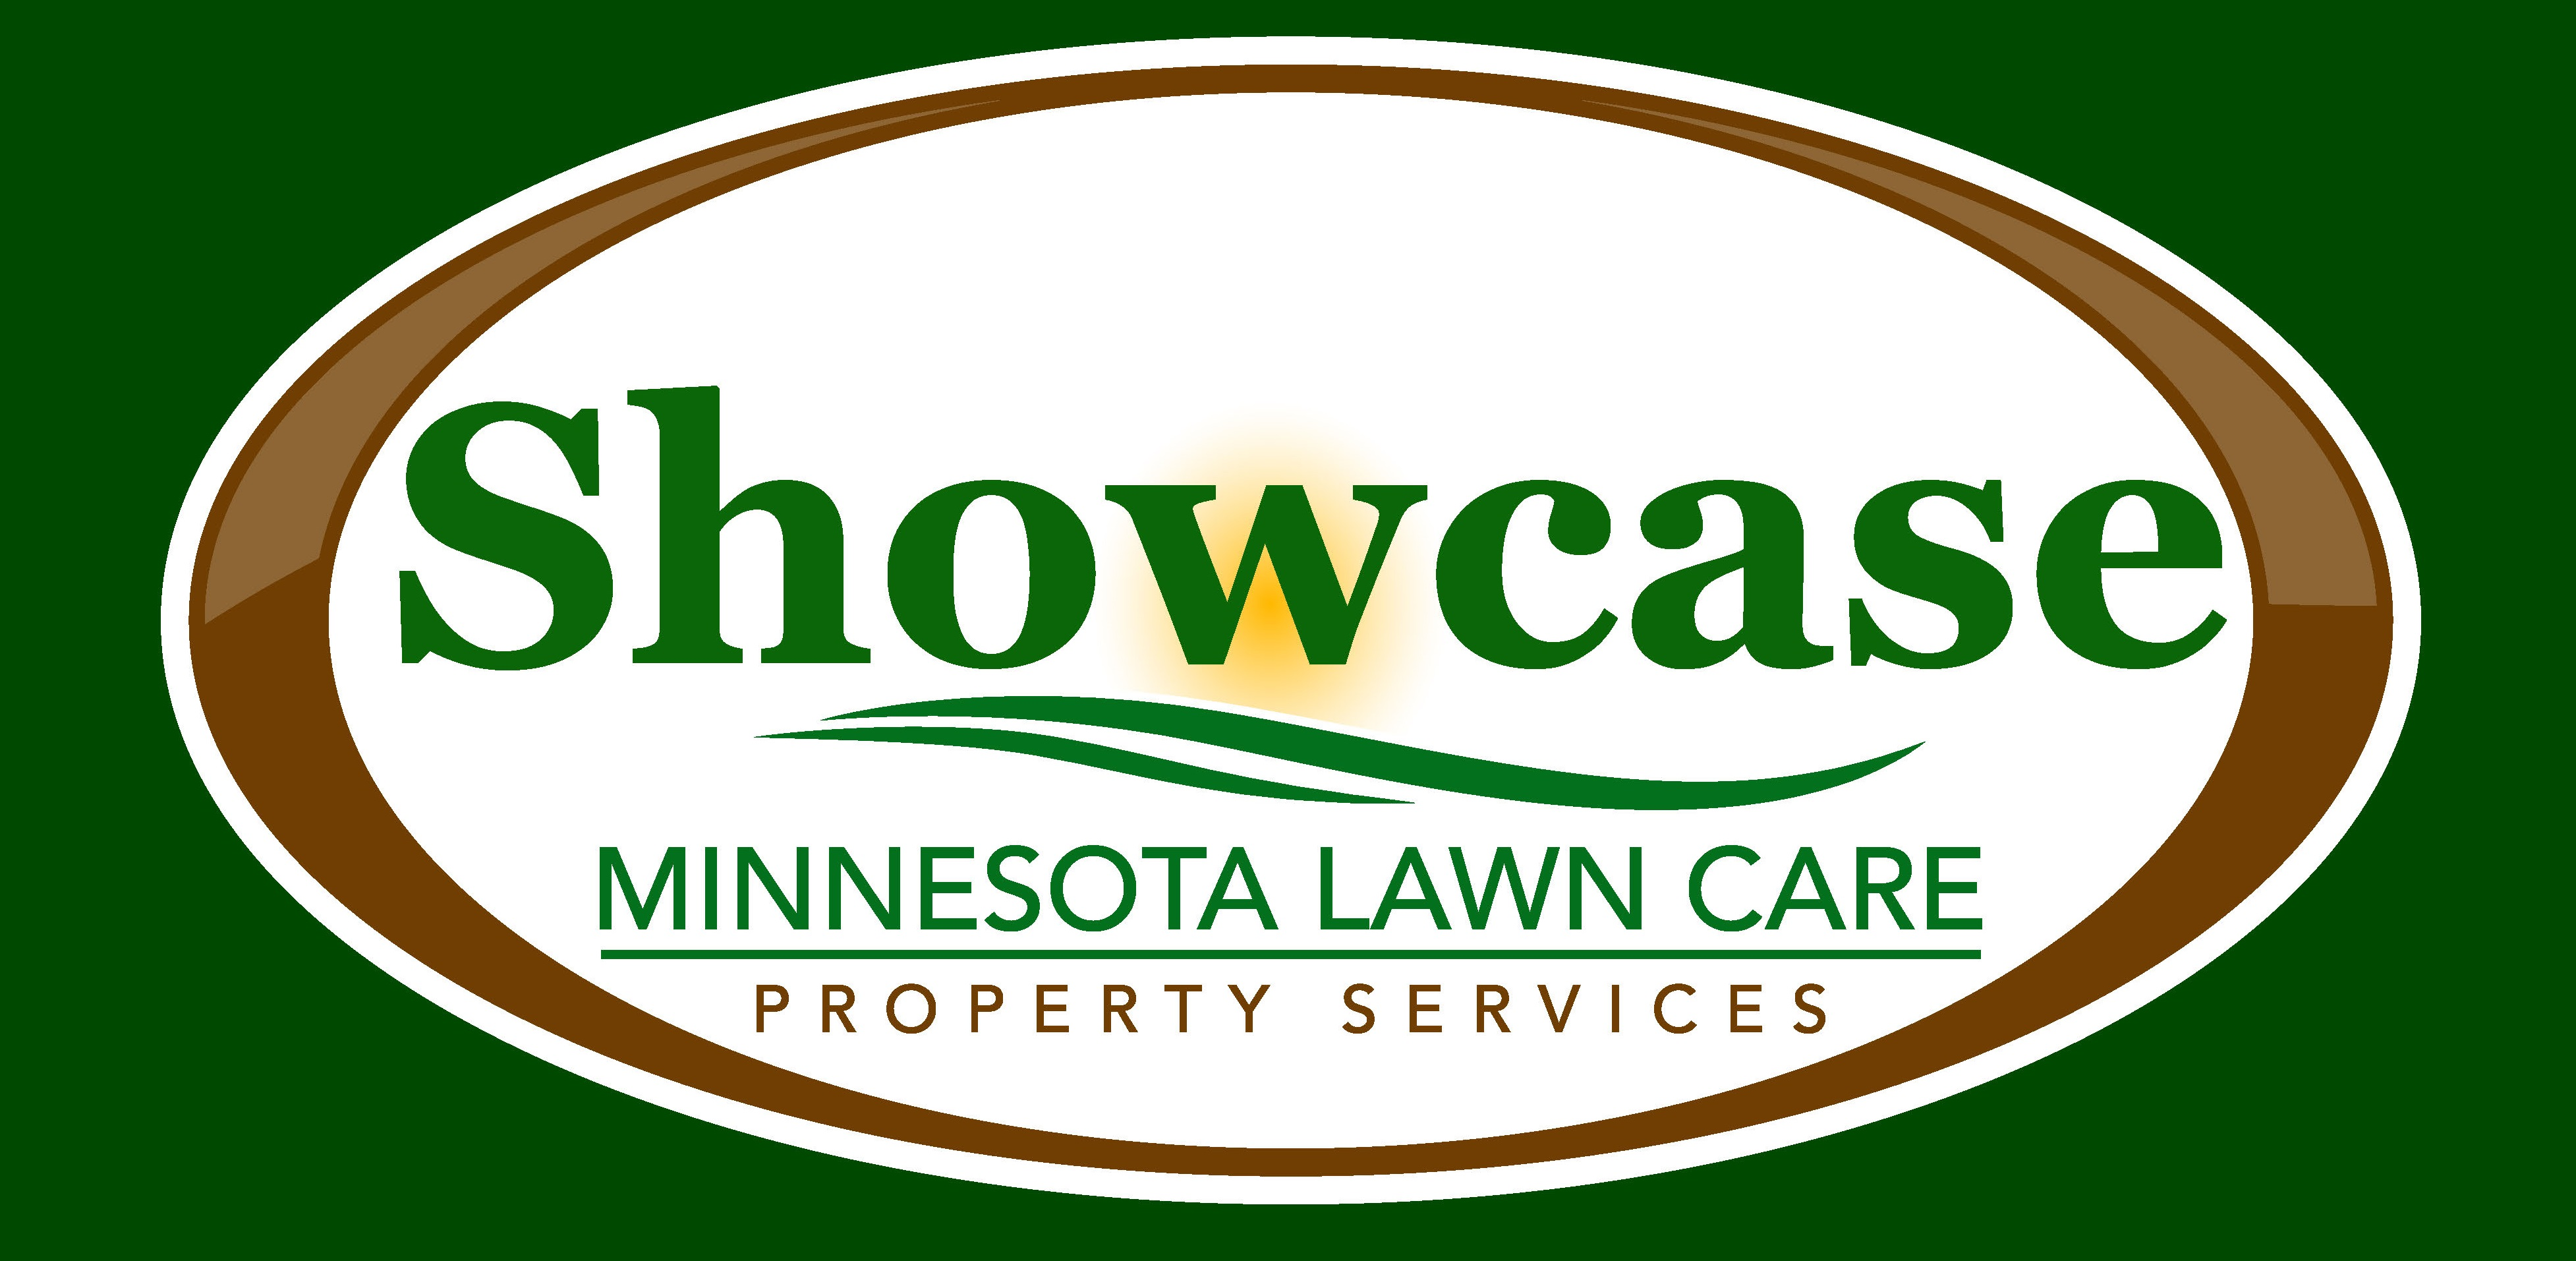 Showcase Lawn Care